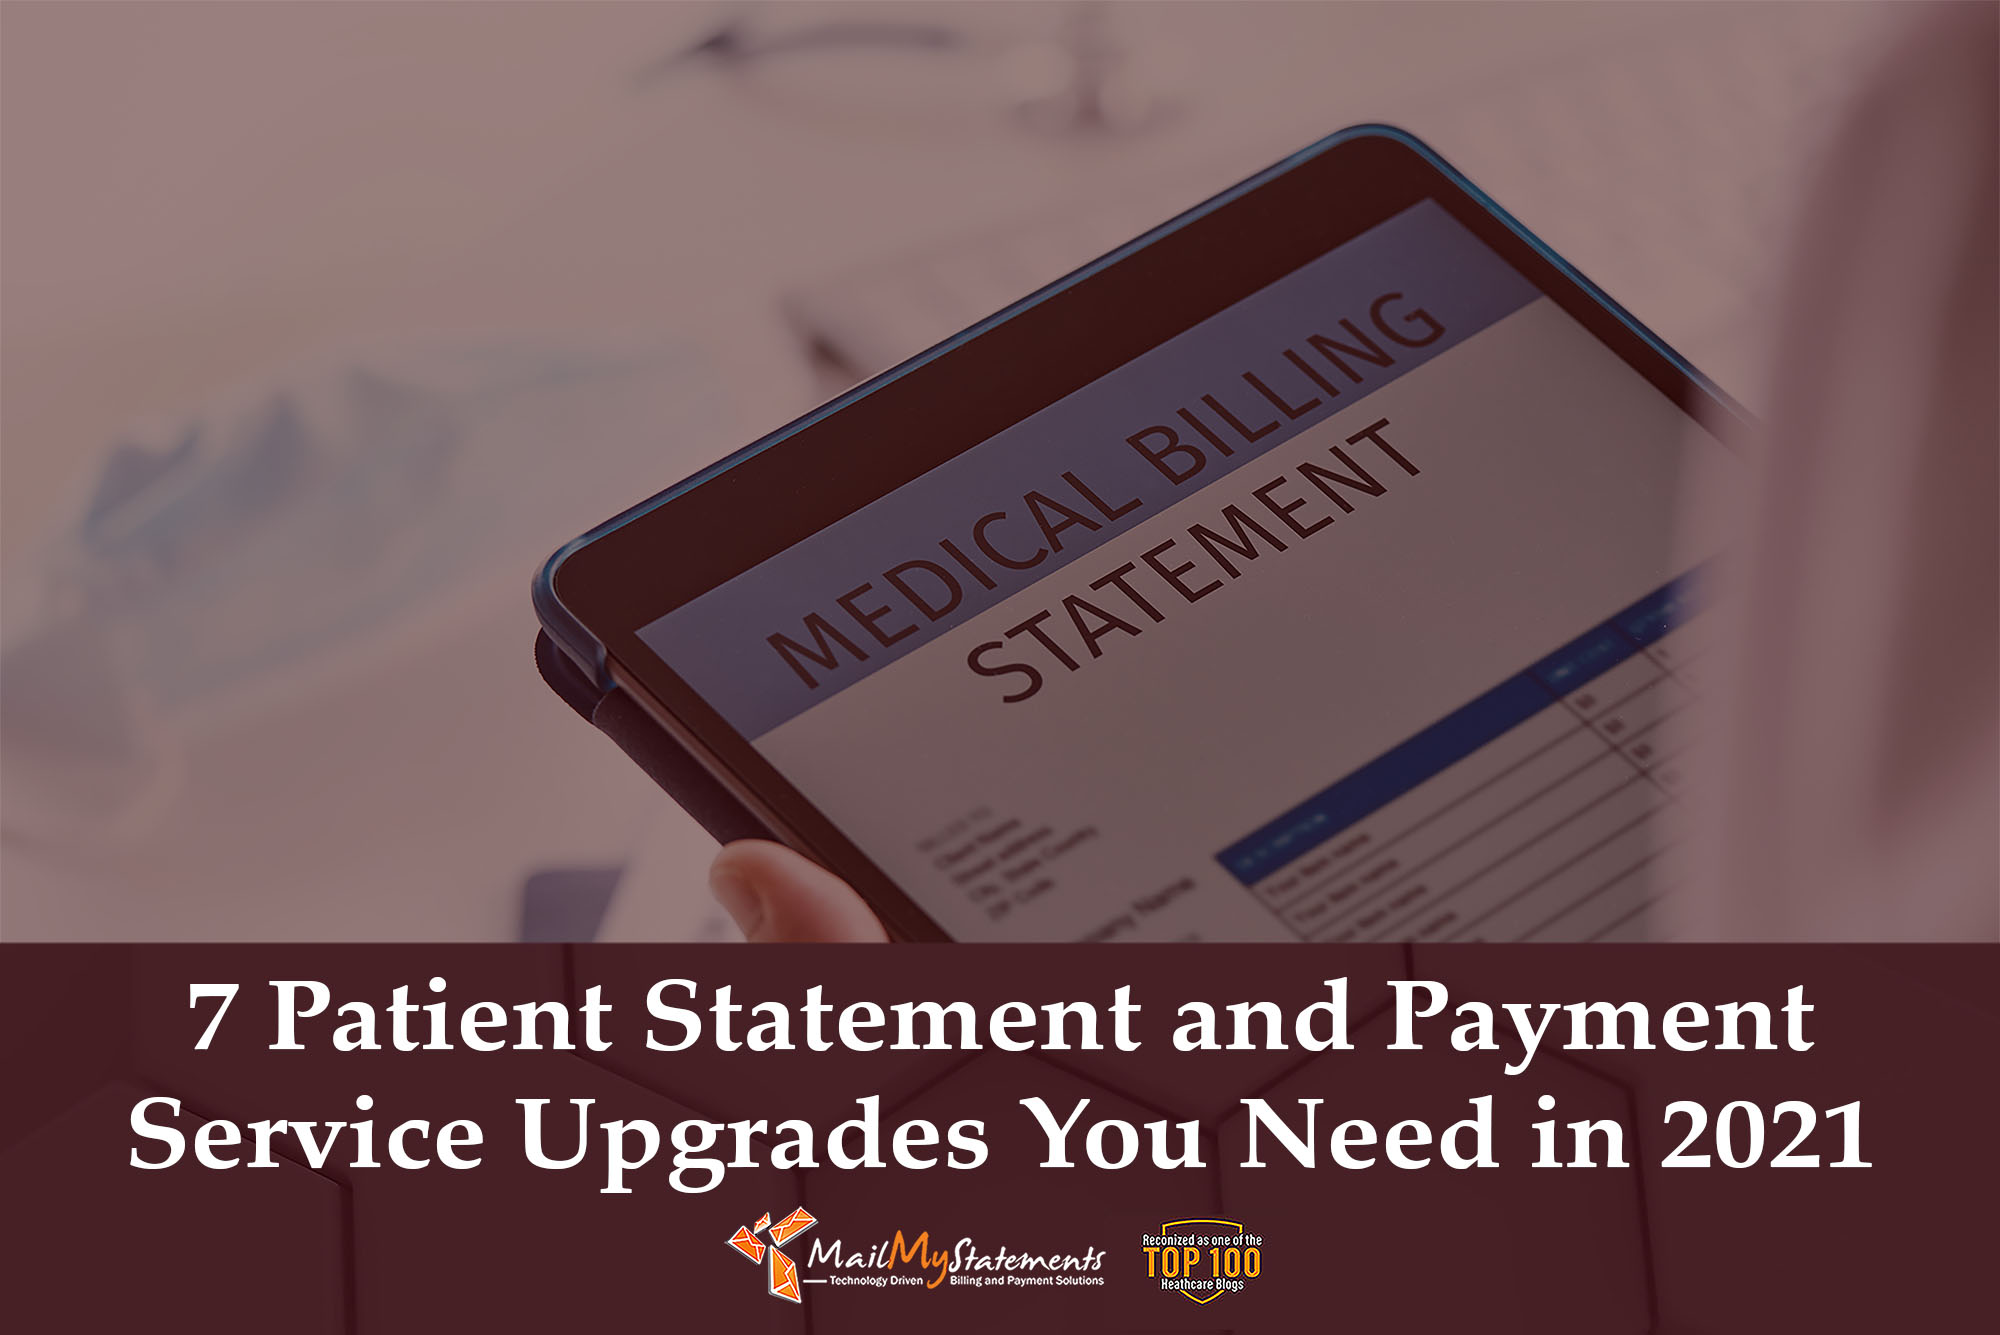 7 Patient Statements and Payment Service Upgrades You Need in 2021